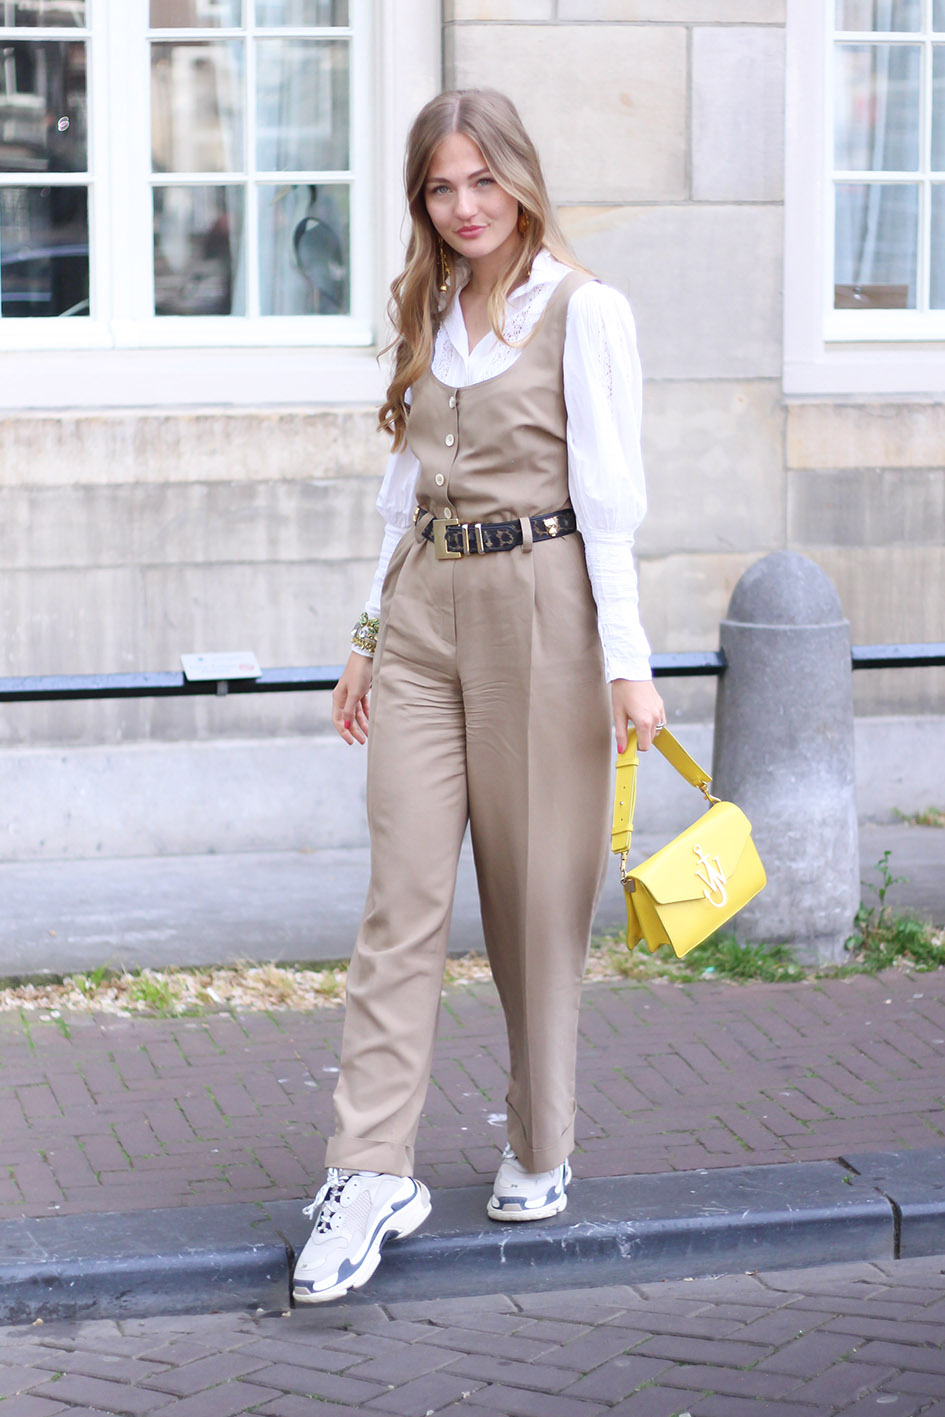 floortjeloves, balenciaga, balenciaga triple s, joop, joop jumpsuit, Laura Ashley, Edward achour Paris, J.W. Anderson, jw Anderson, vintage, sustainable